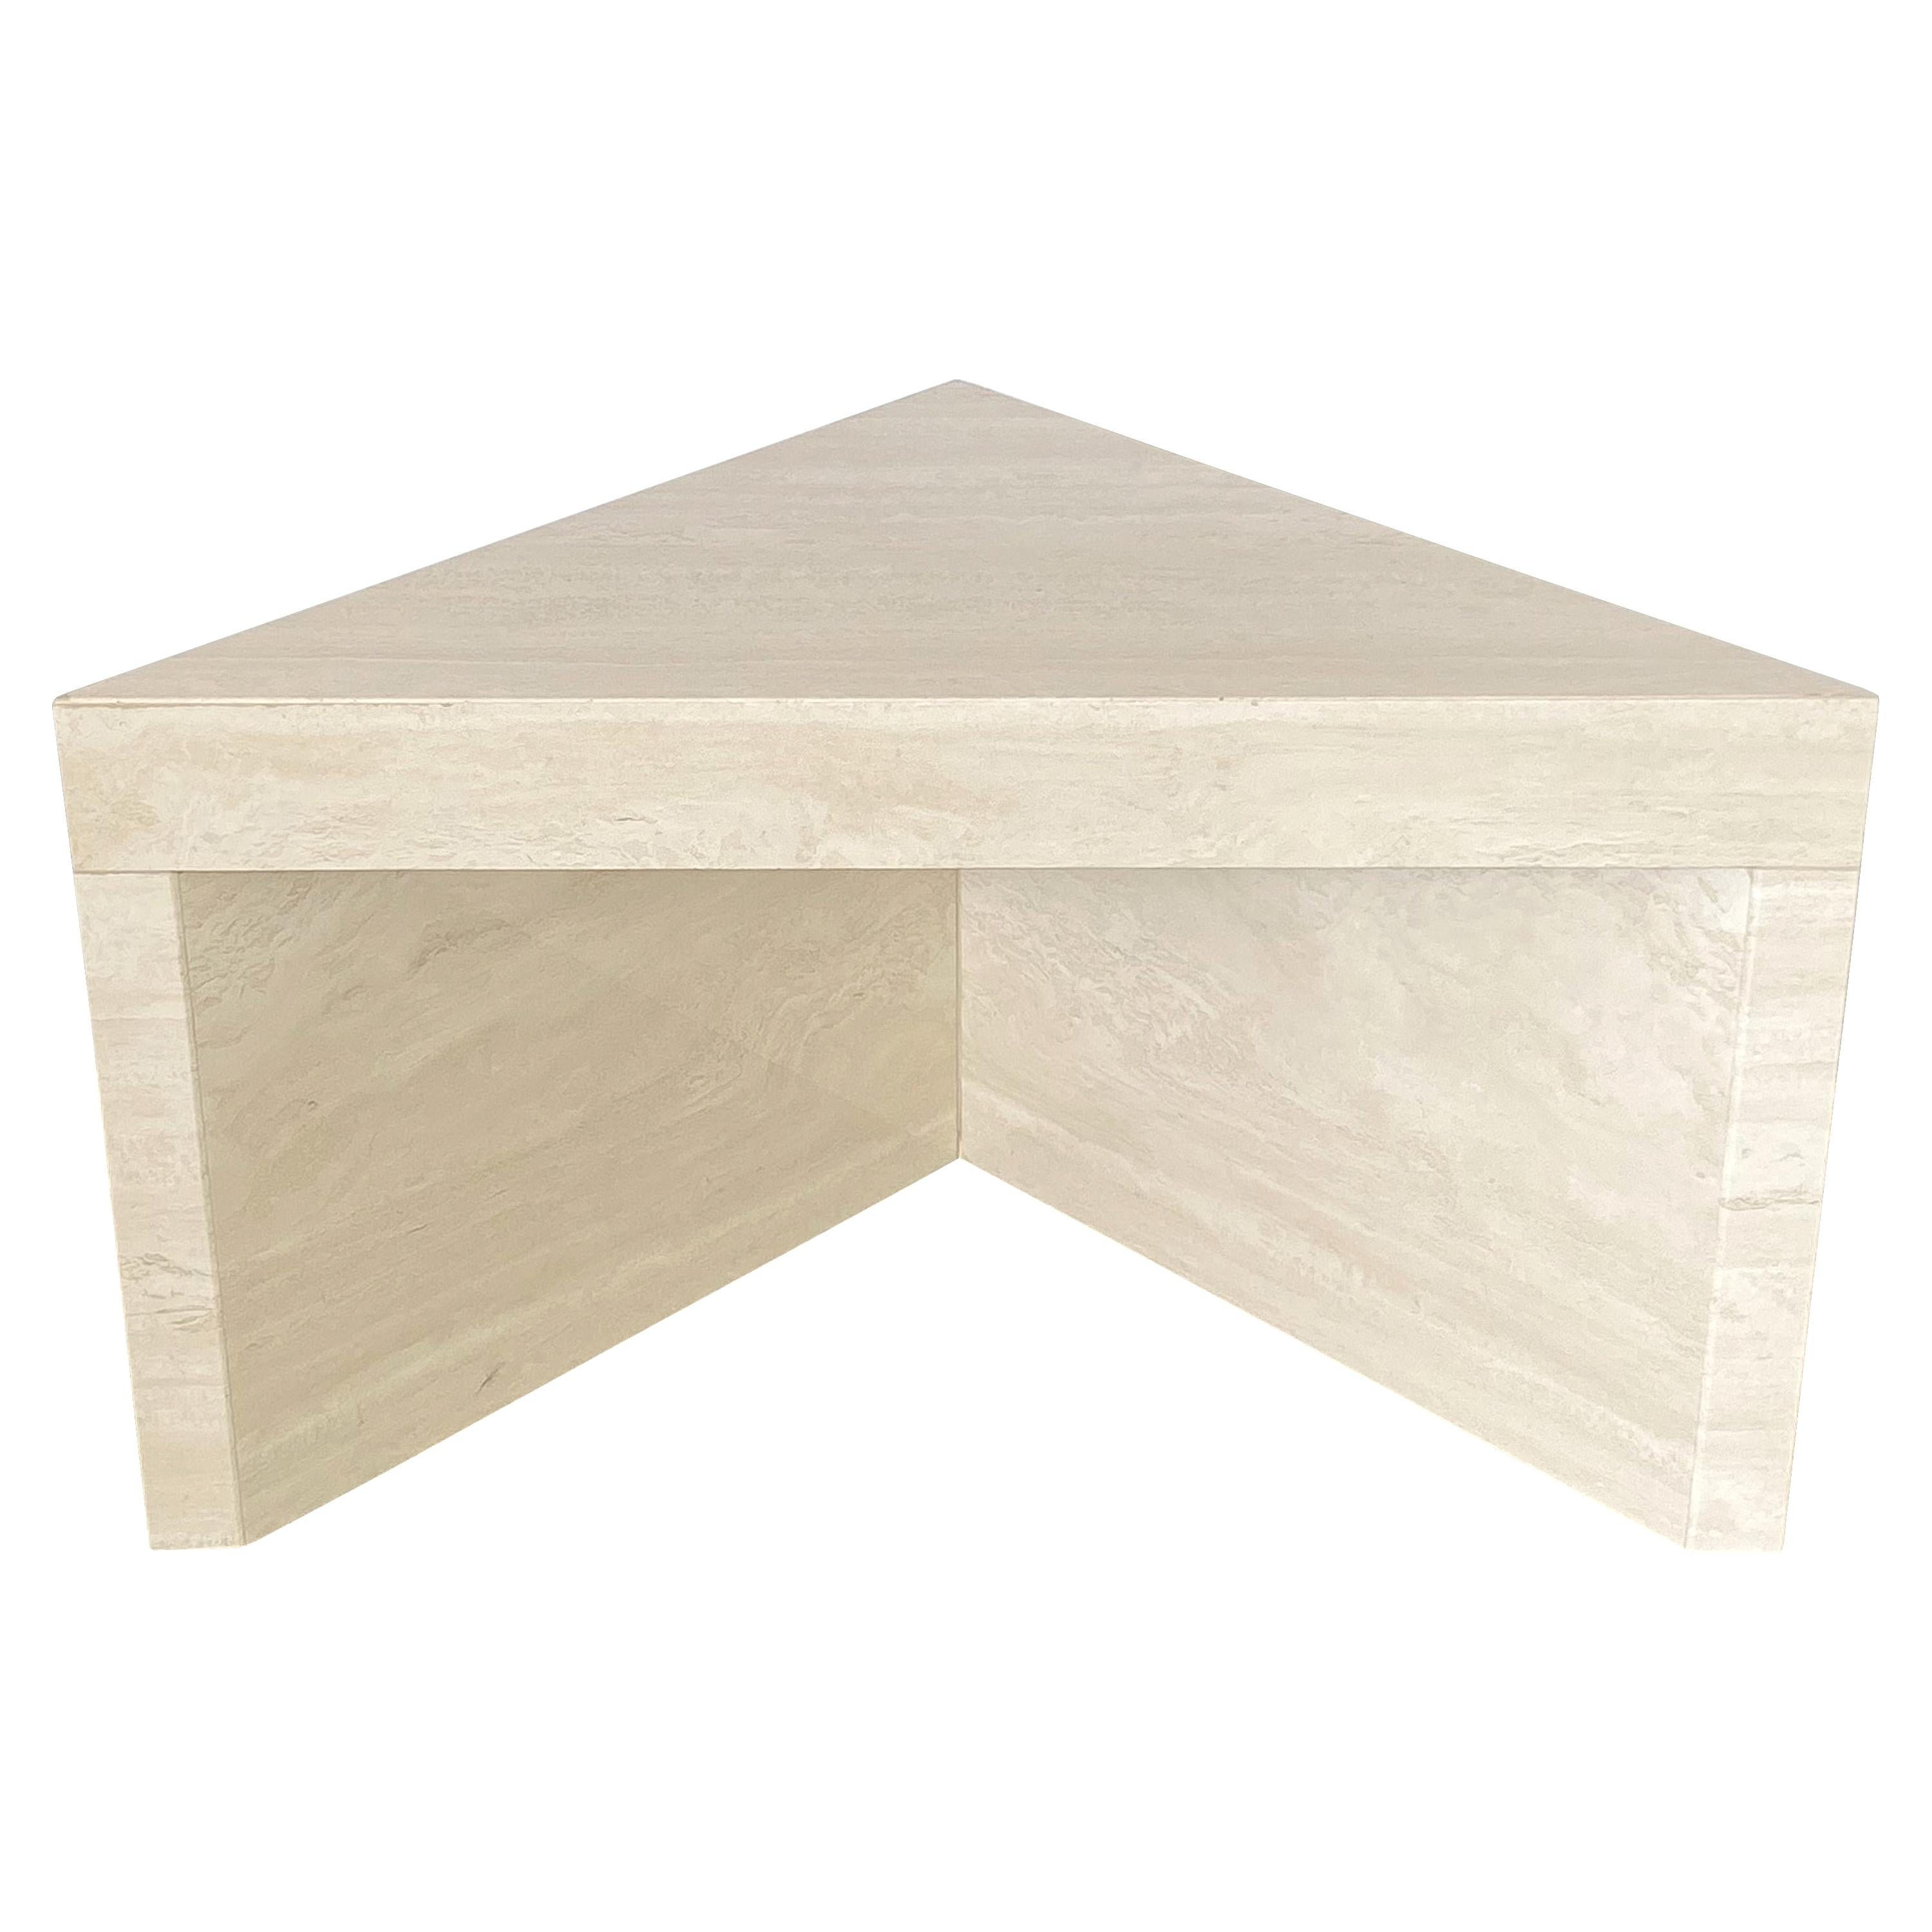 Triangular Italian Travertine End or Side Table